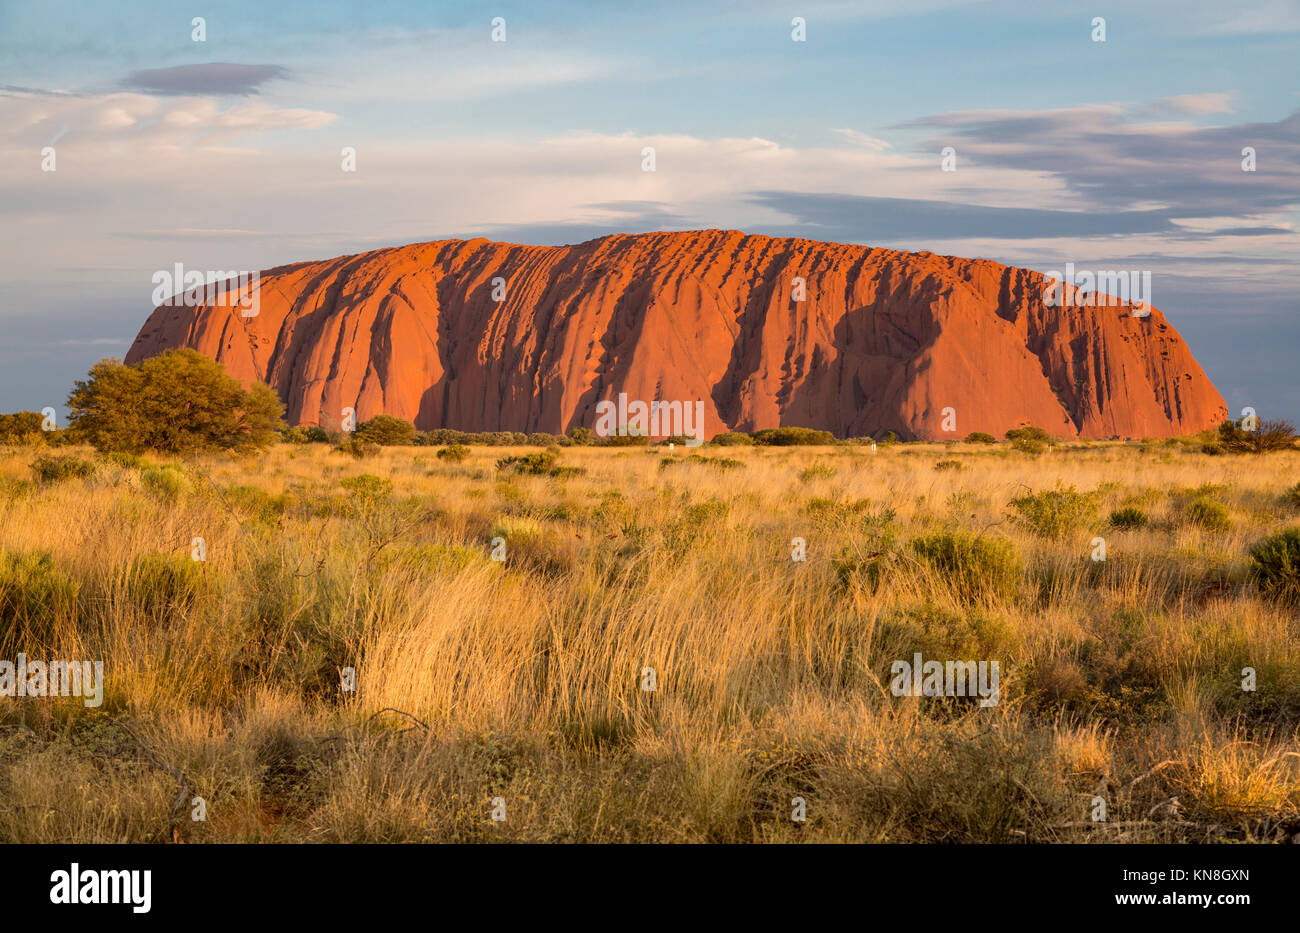 Uluru Ayers Rock Outback Australia Stock Photo